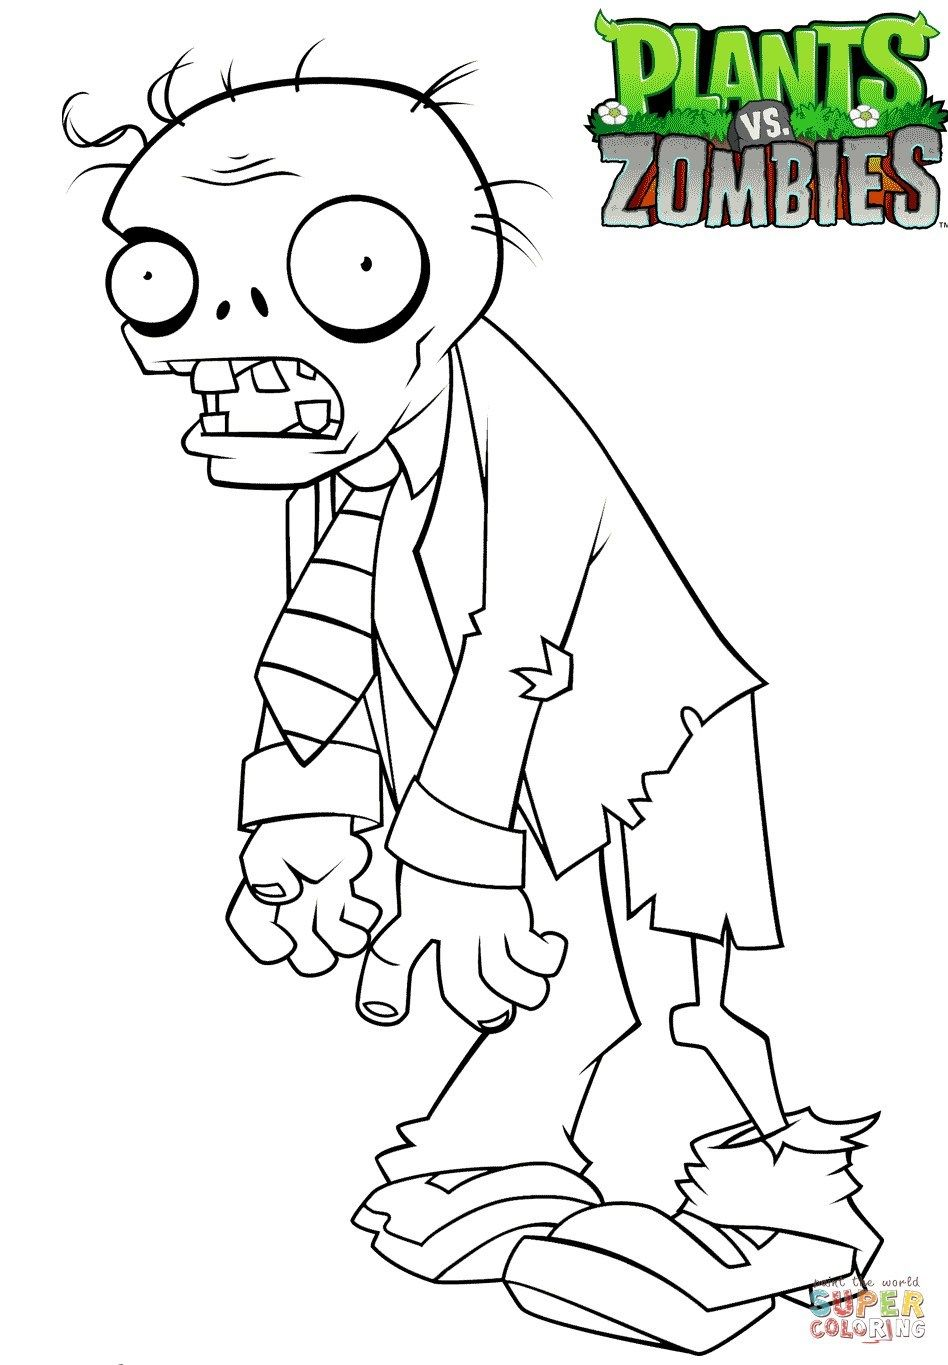 22 Best Photo Of Zombie Coloring Pages Davemelillo Com Coloring Books Coloring Pages Plant Zombie